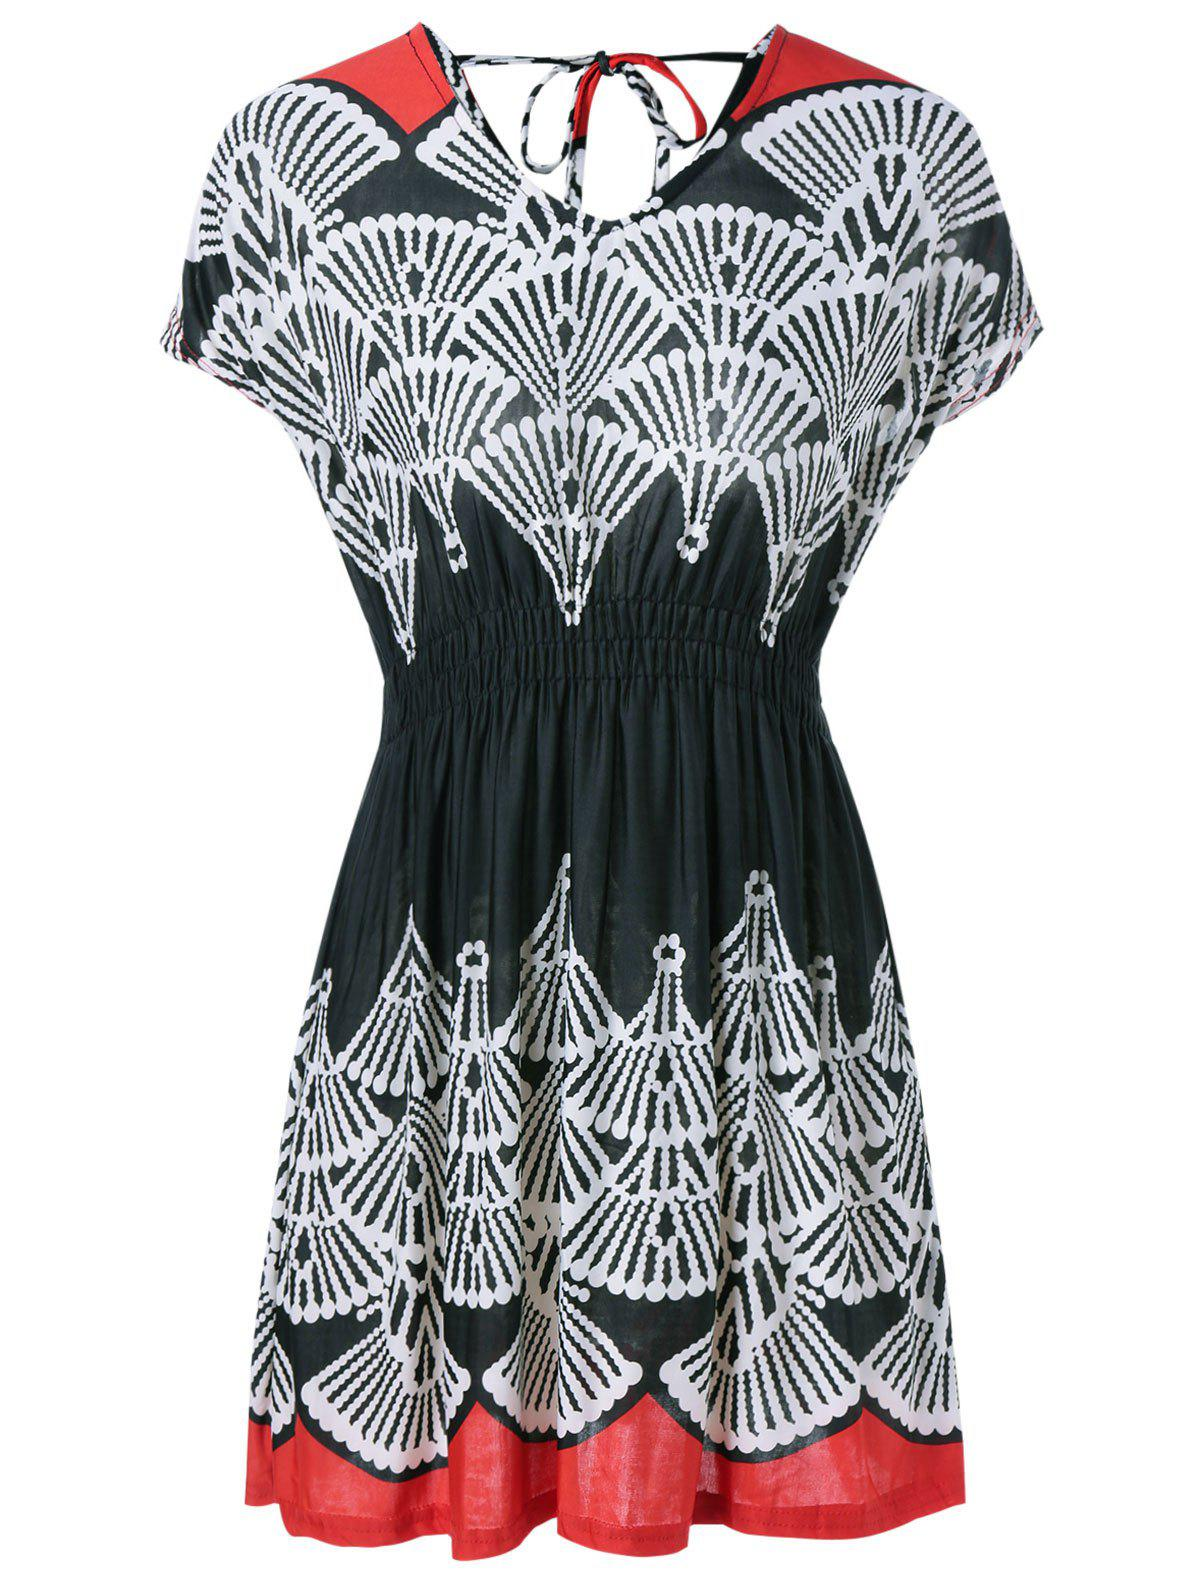 High Waist Tribe Print Cut Out Dress - RED ONE SIZE(FIT SIZE XS TO M)